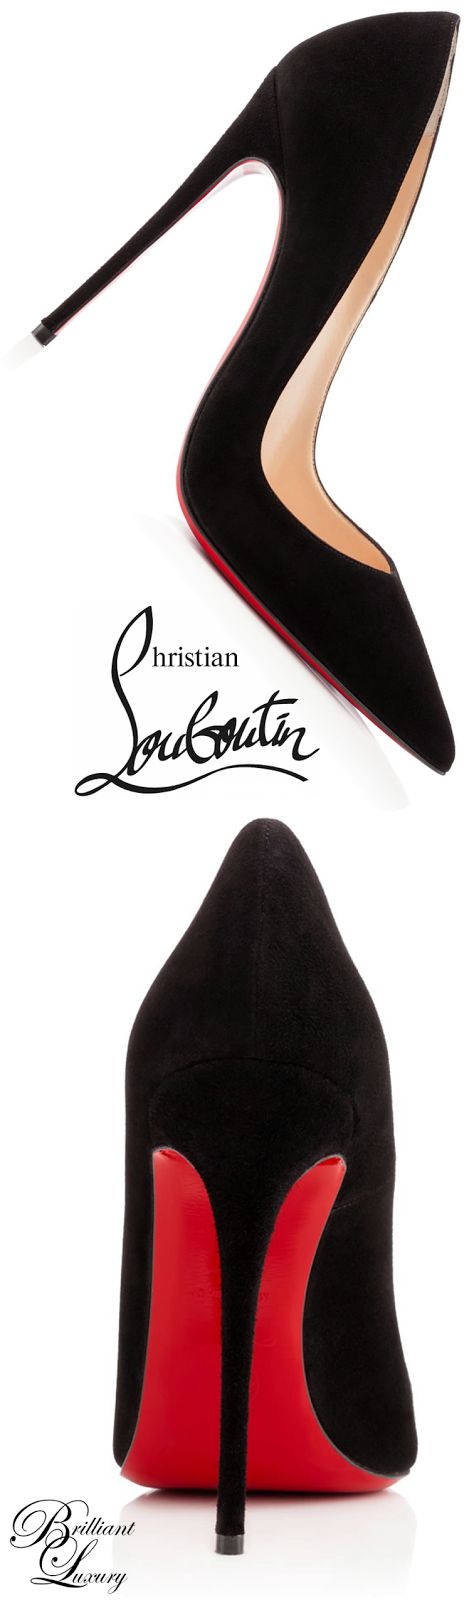 Brilliant Luxury * Christian Louboutin 'So Kate' 2015